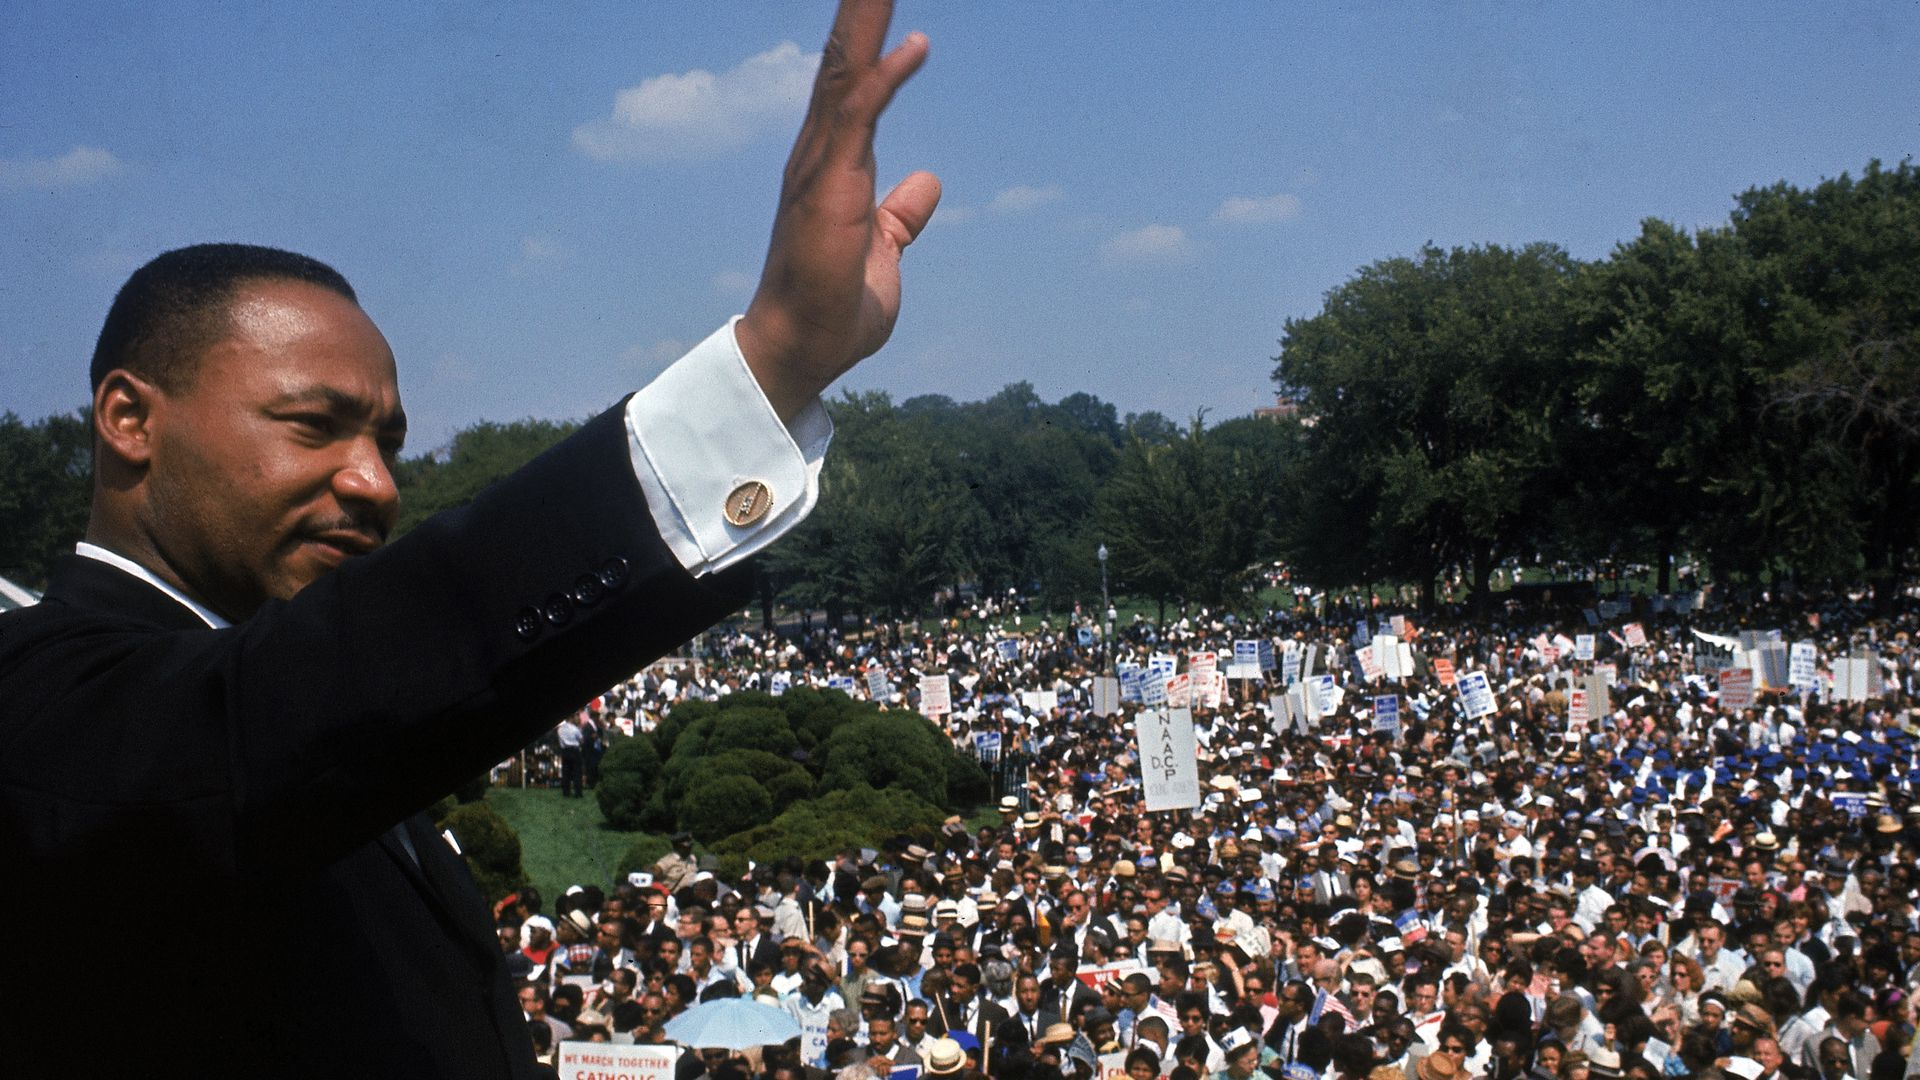 Martin Luther King, Jr. waves to a crowd